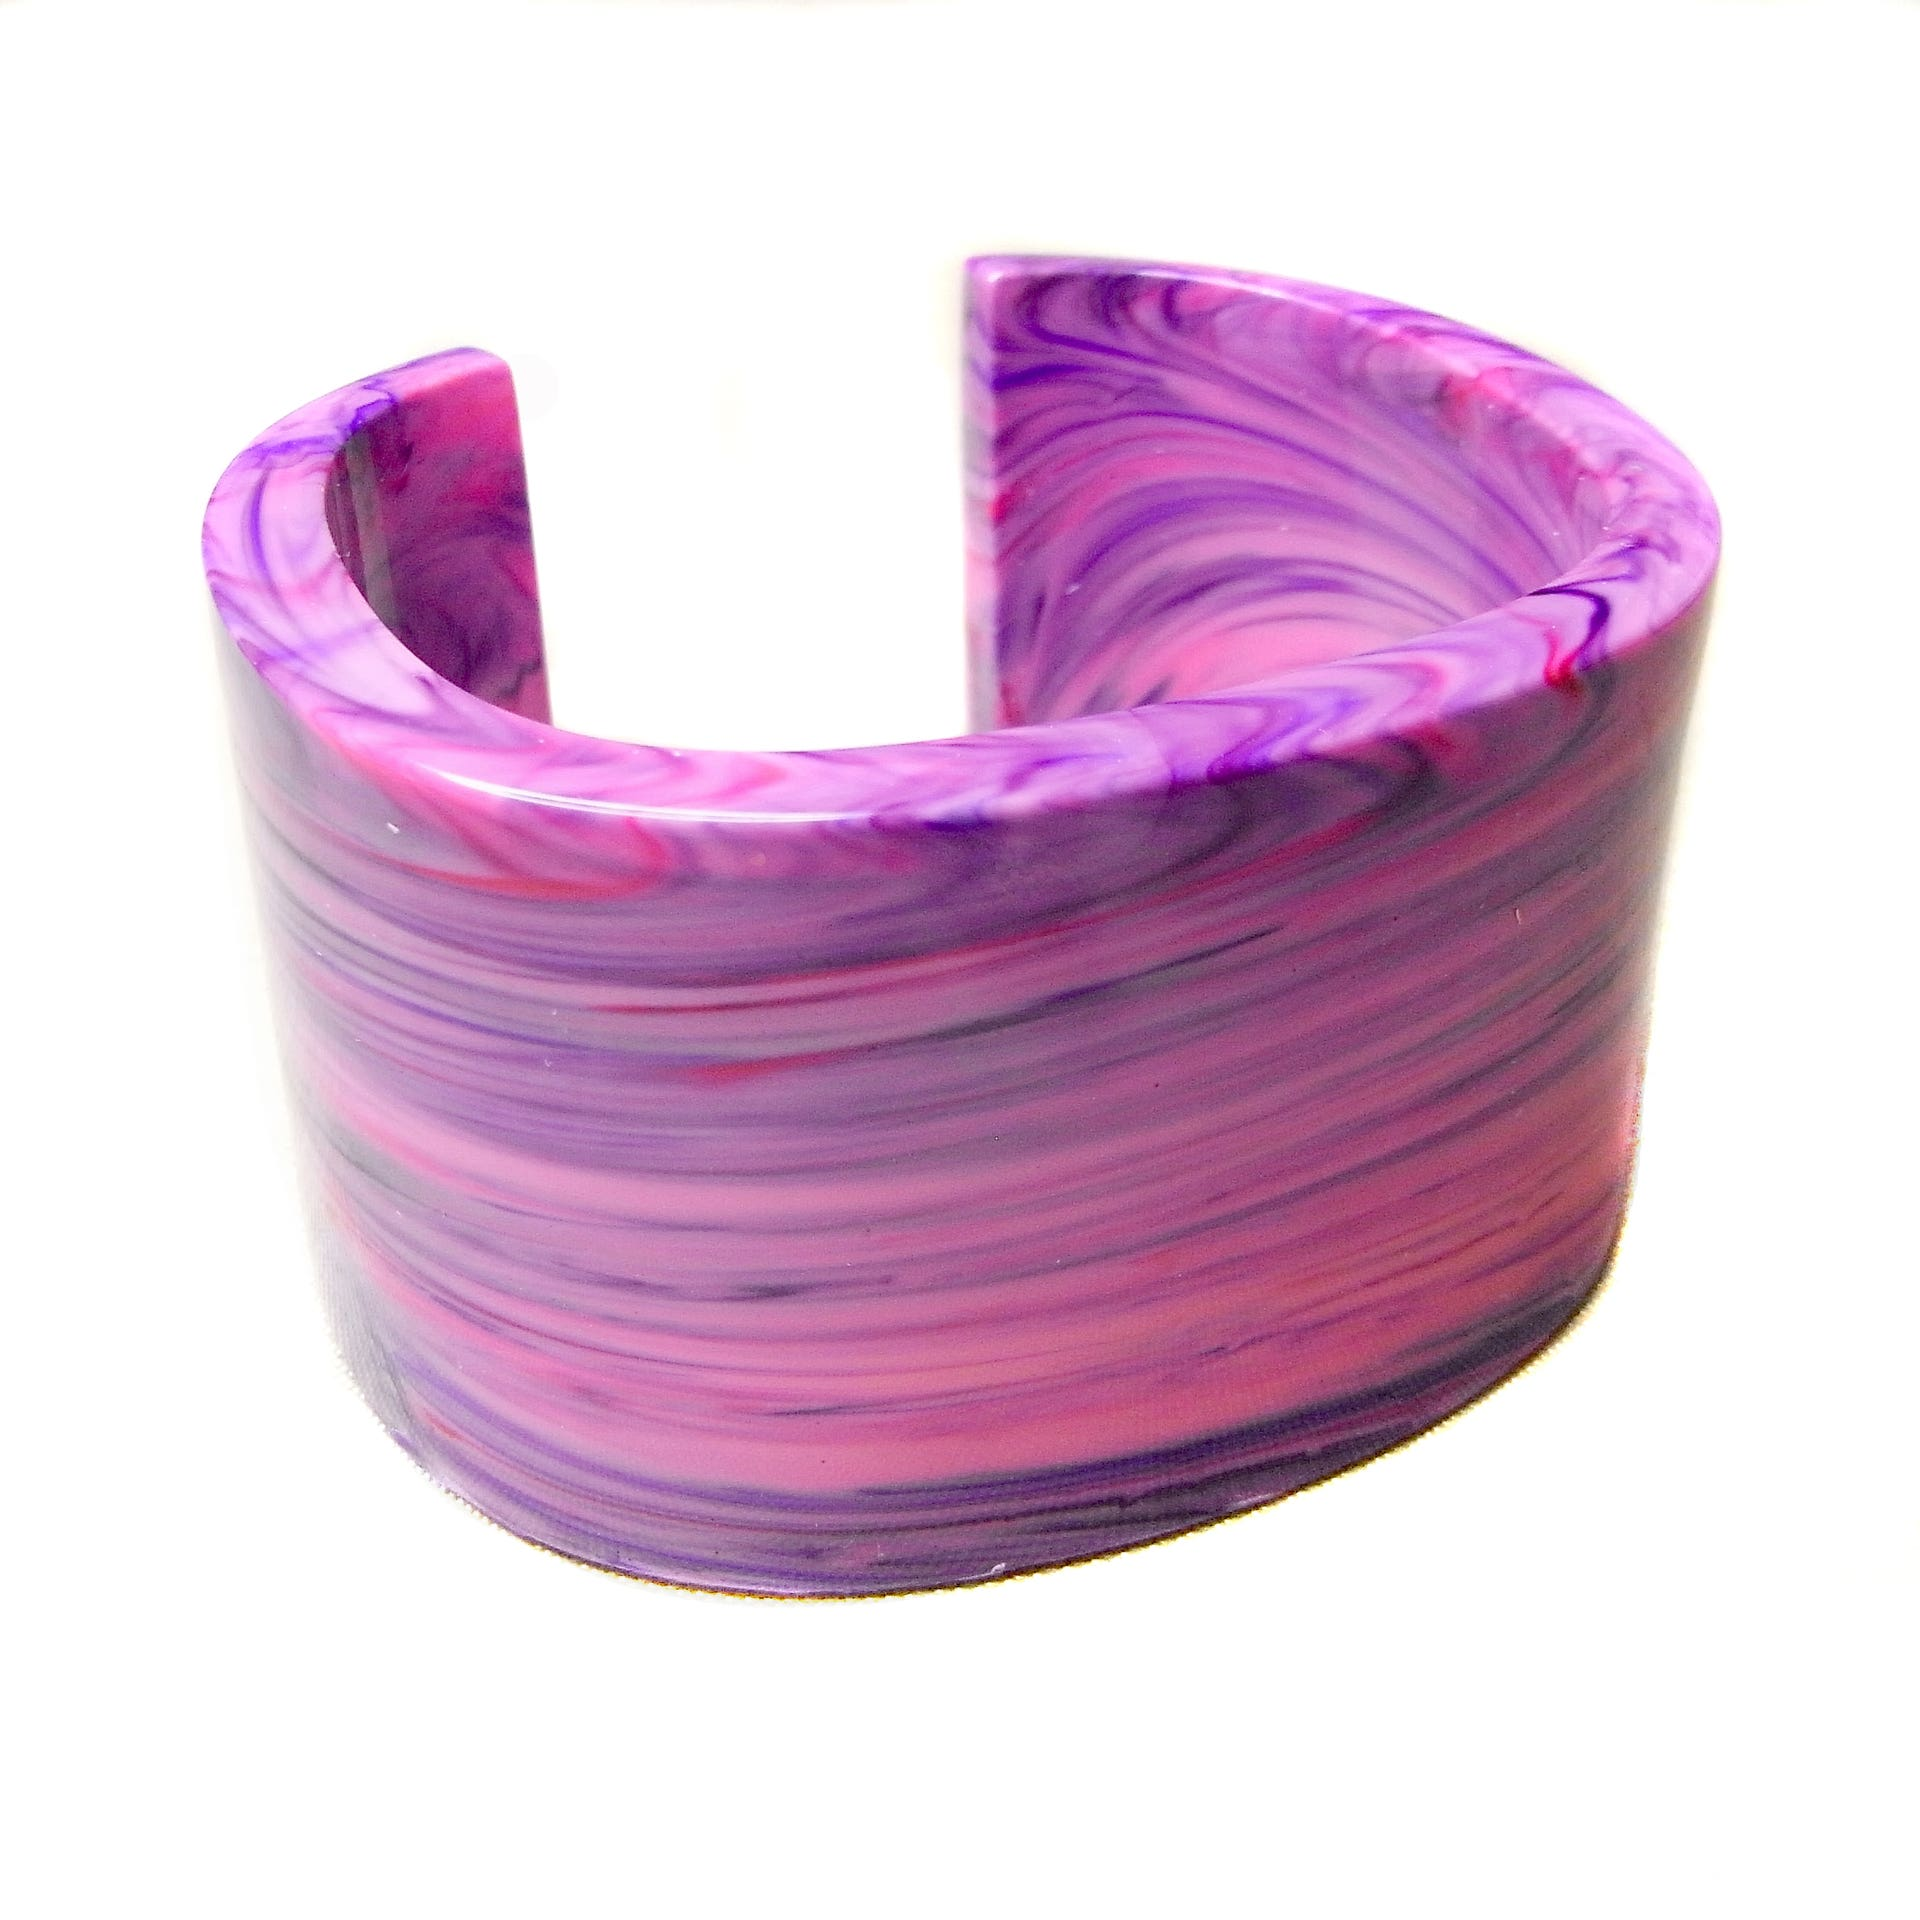 Marbled pink and purple glossy cuff